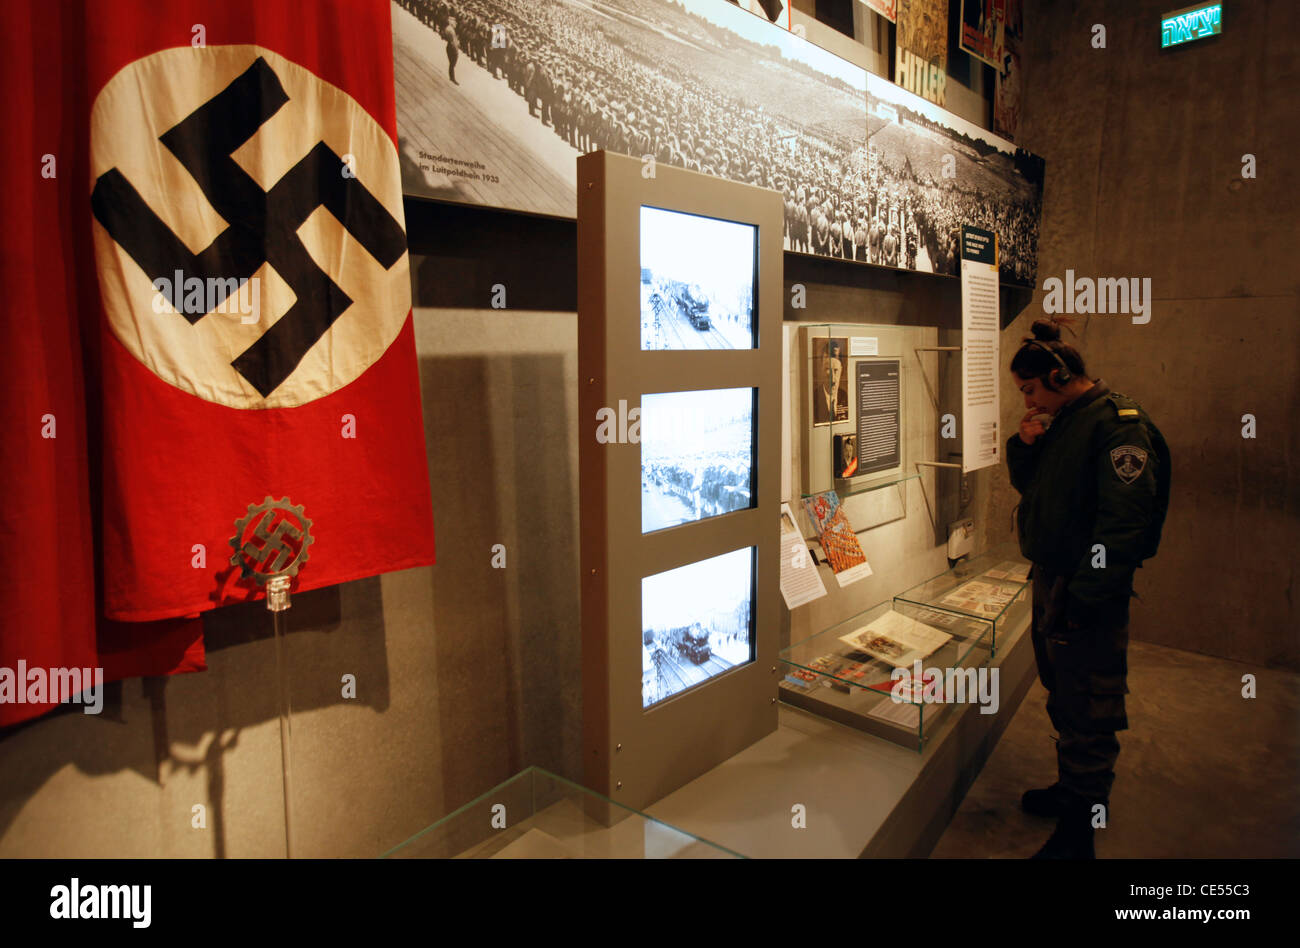 in Yad Vashem History Museum for Holocaust Jews victims in West Jerusalem Israel - Stock Image